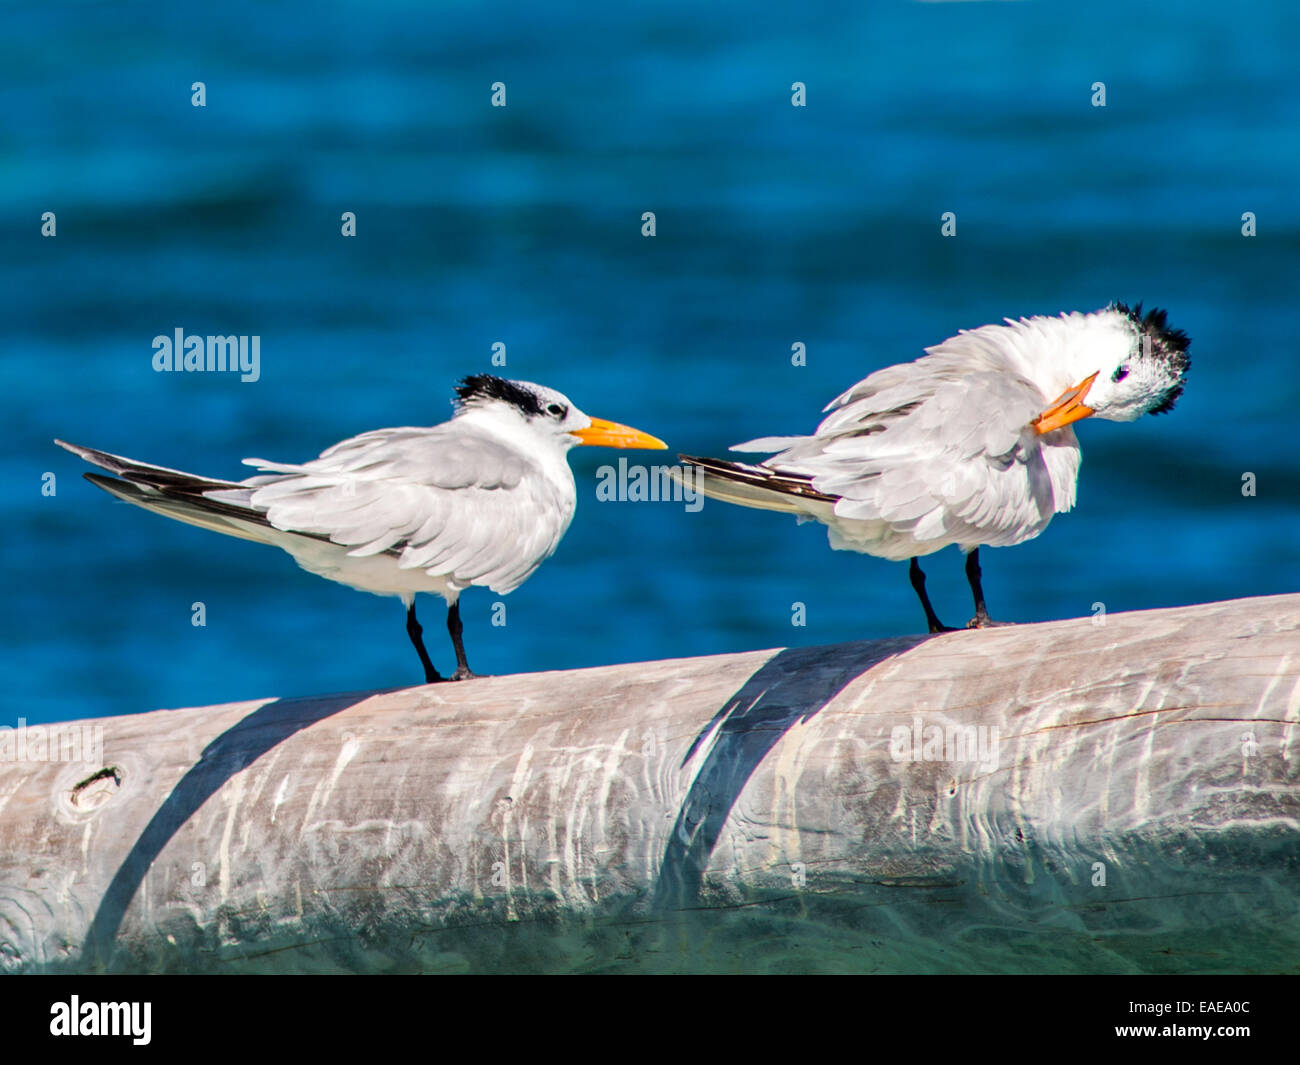 Two Royal Terns [Thalasseus maximus] preening on a pole jutting out with the Caribbean sea in the background. - Stock Image